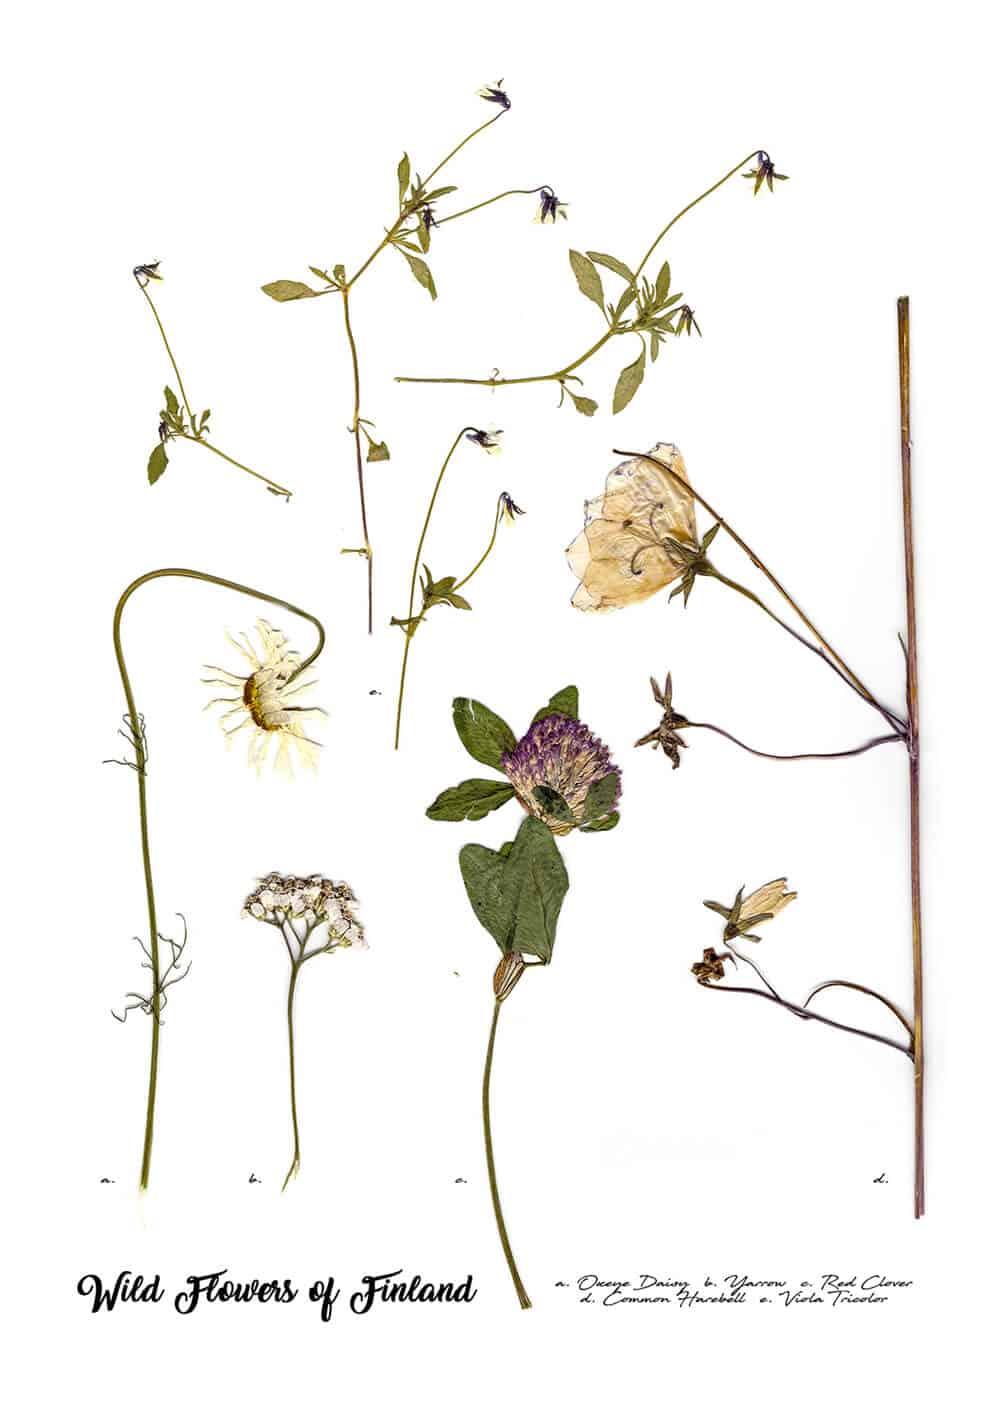 Natalie Field, Wild Flowers of Finland Annotation, 2018.